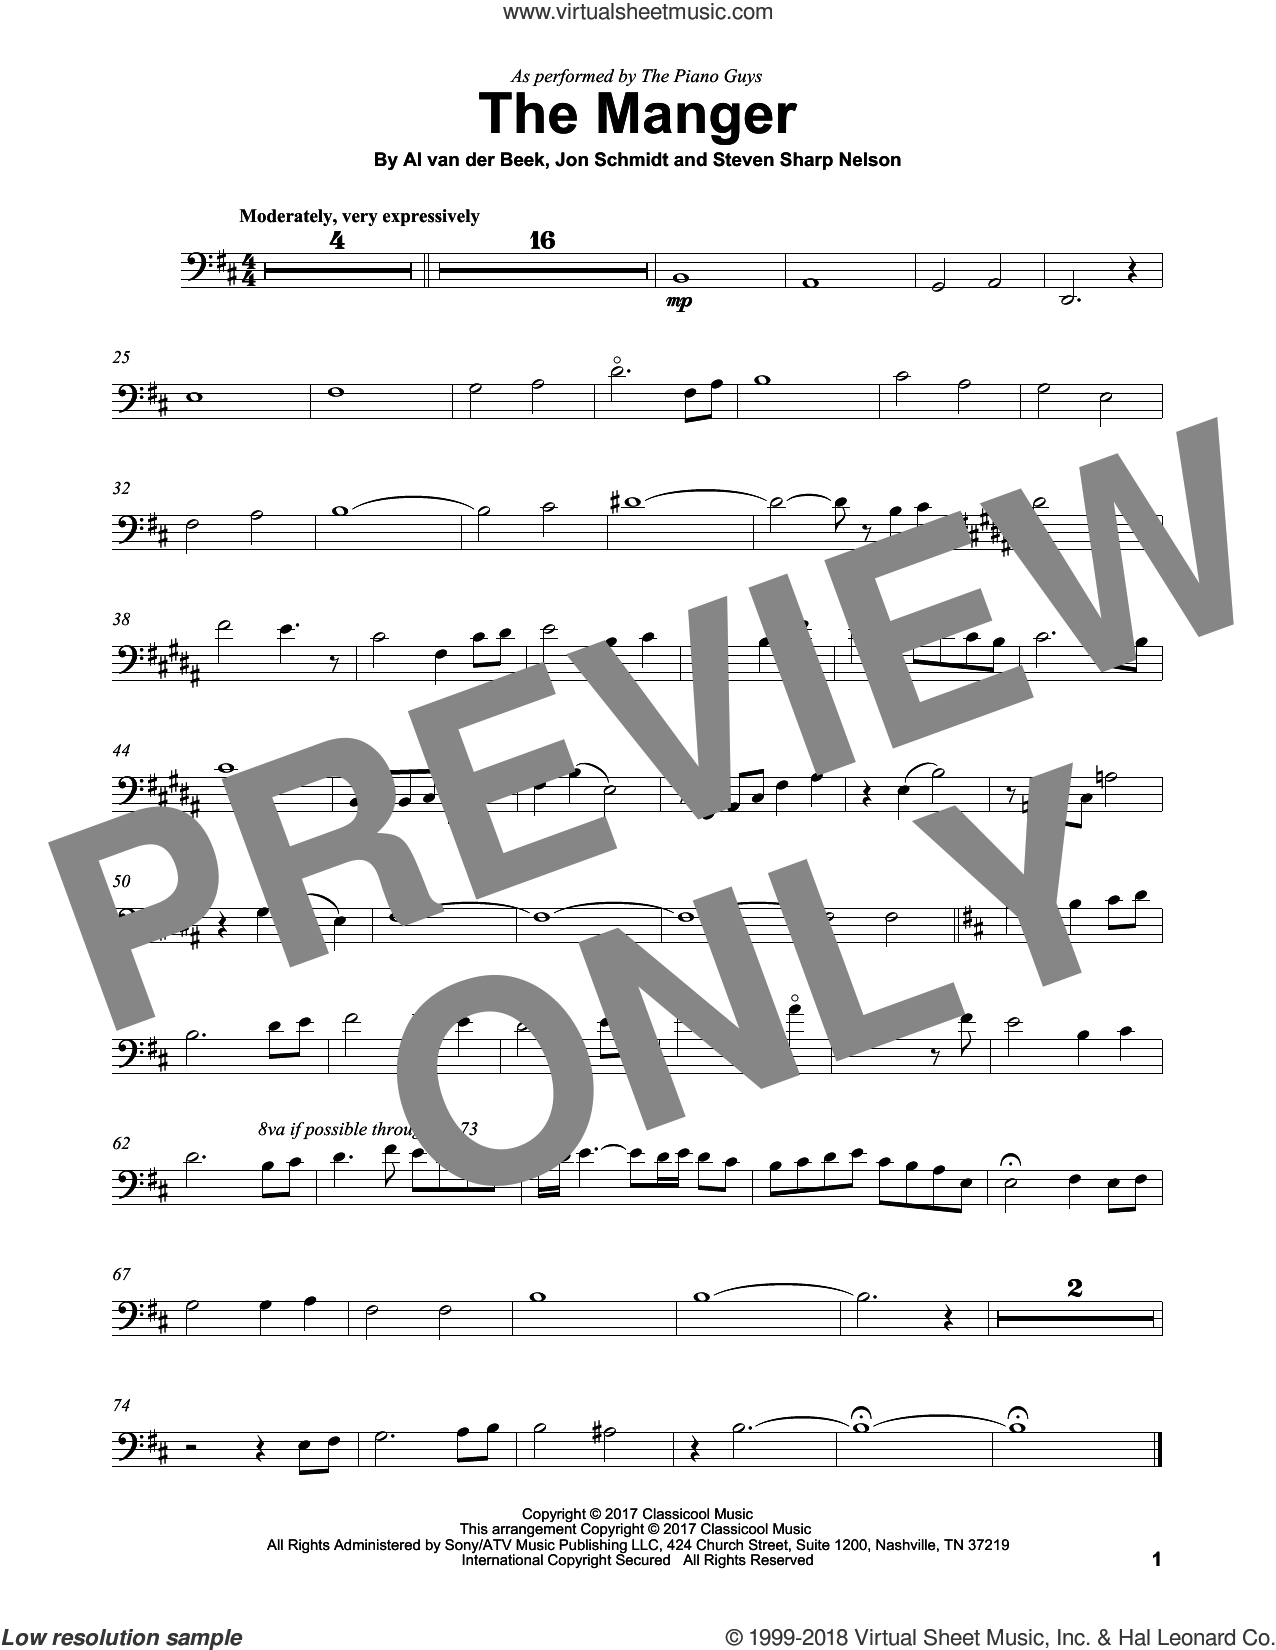 The Manger sheet music for cello solo by The Piano Guys, Al van der Beek, Jon Schmidt and Steven Sharp Nelson, intermediate skill level